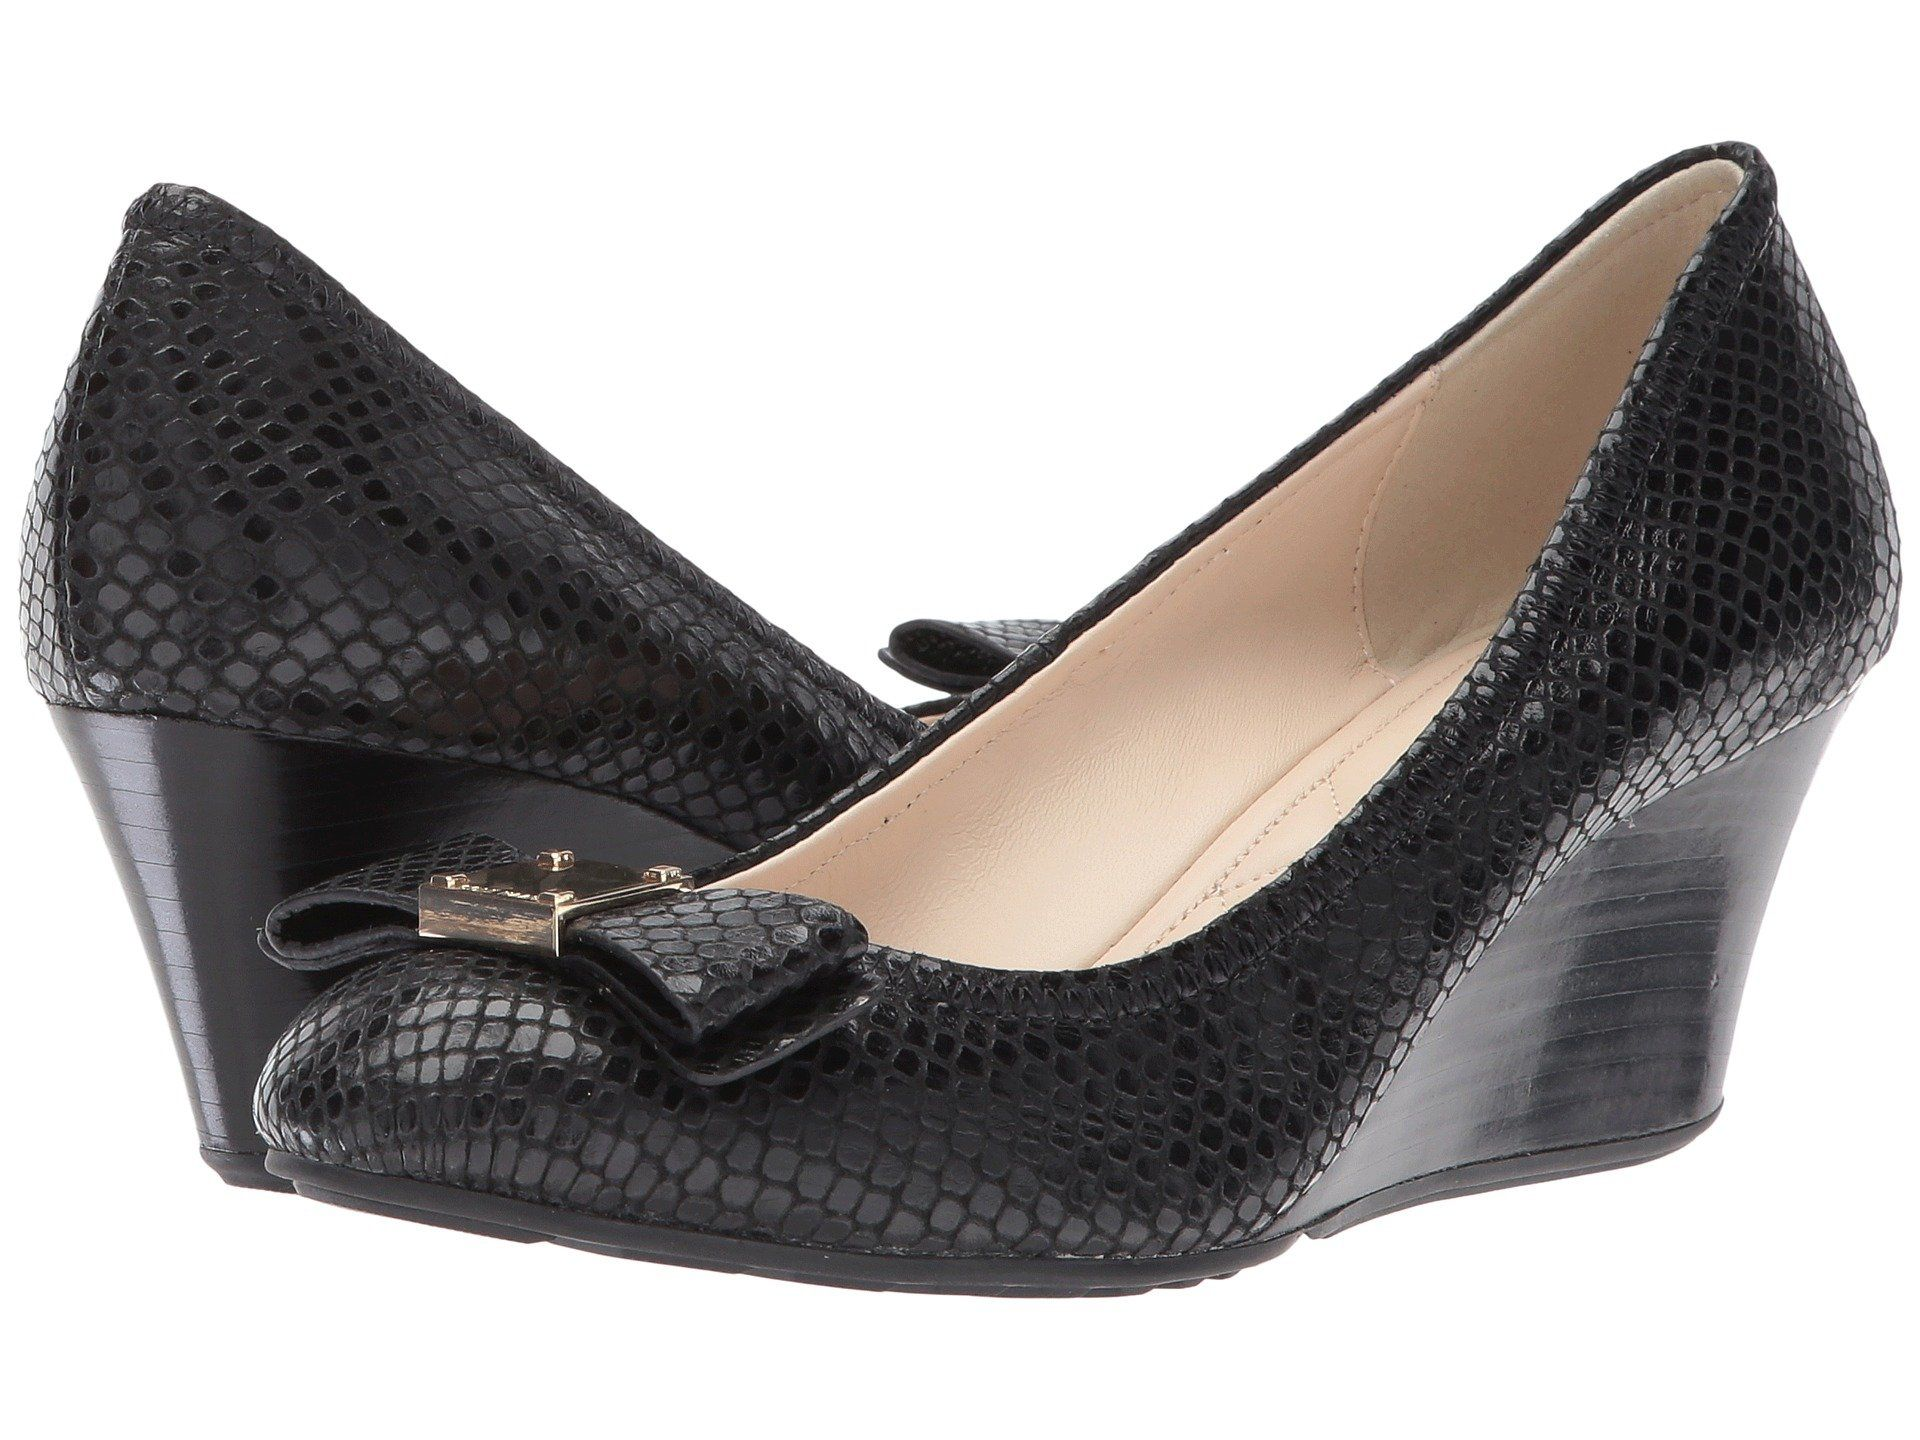 64cd1f9f1 COLE HAAN | Cole Haan Tali Grand Bow Wedge 65 #Shoes #Heels #COLE HAAN